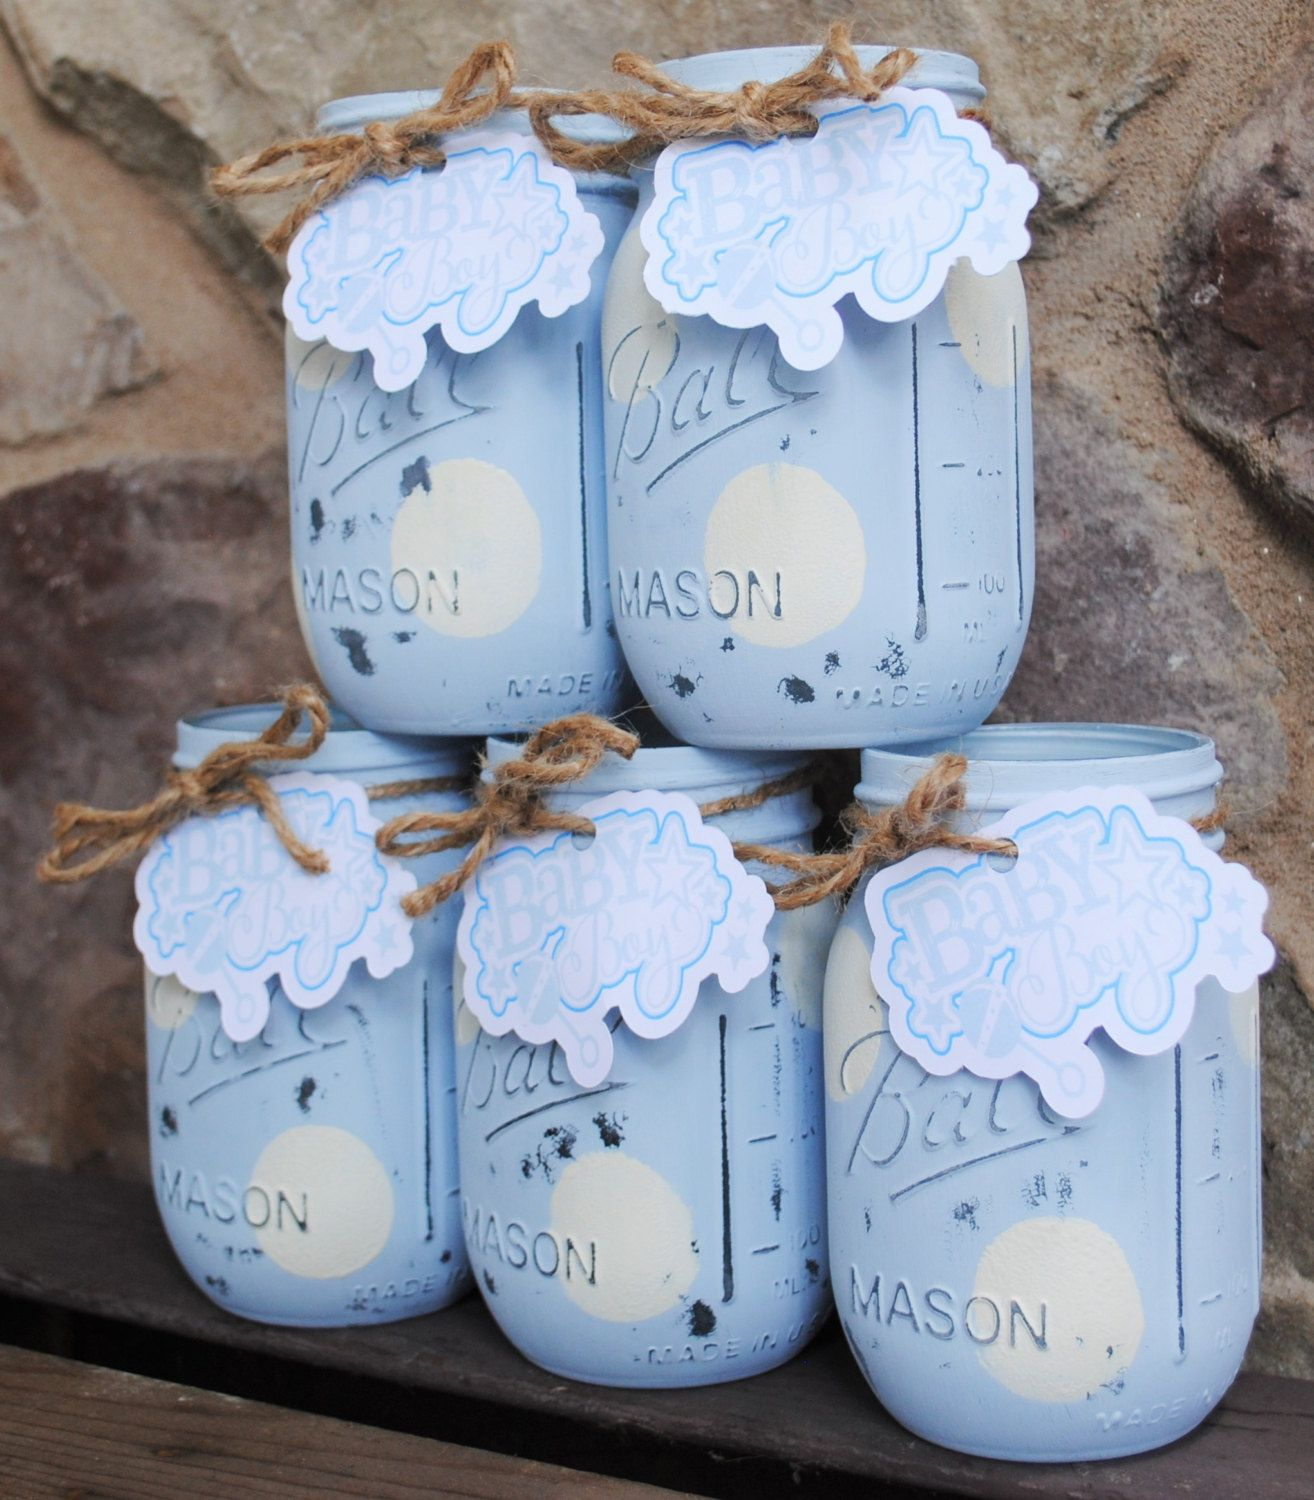 Painted mason ball jars with